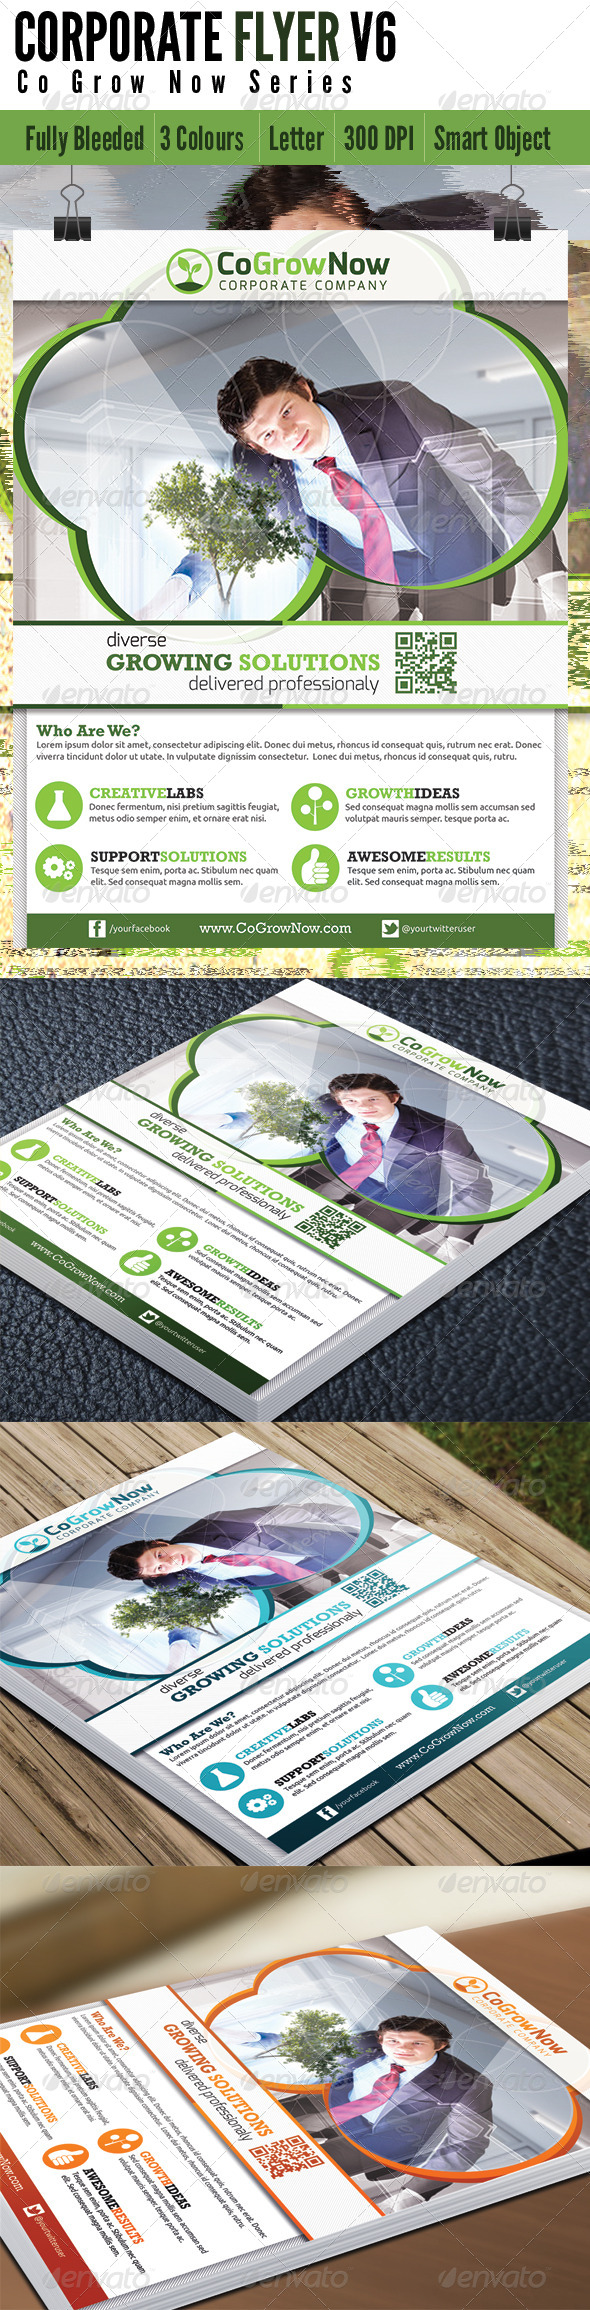 GraphicRiver Corporate Flyer V6 5151199